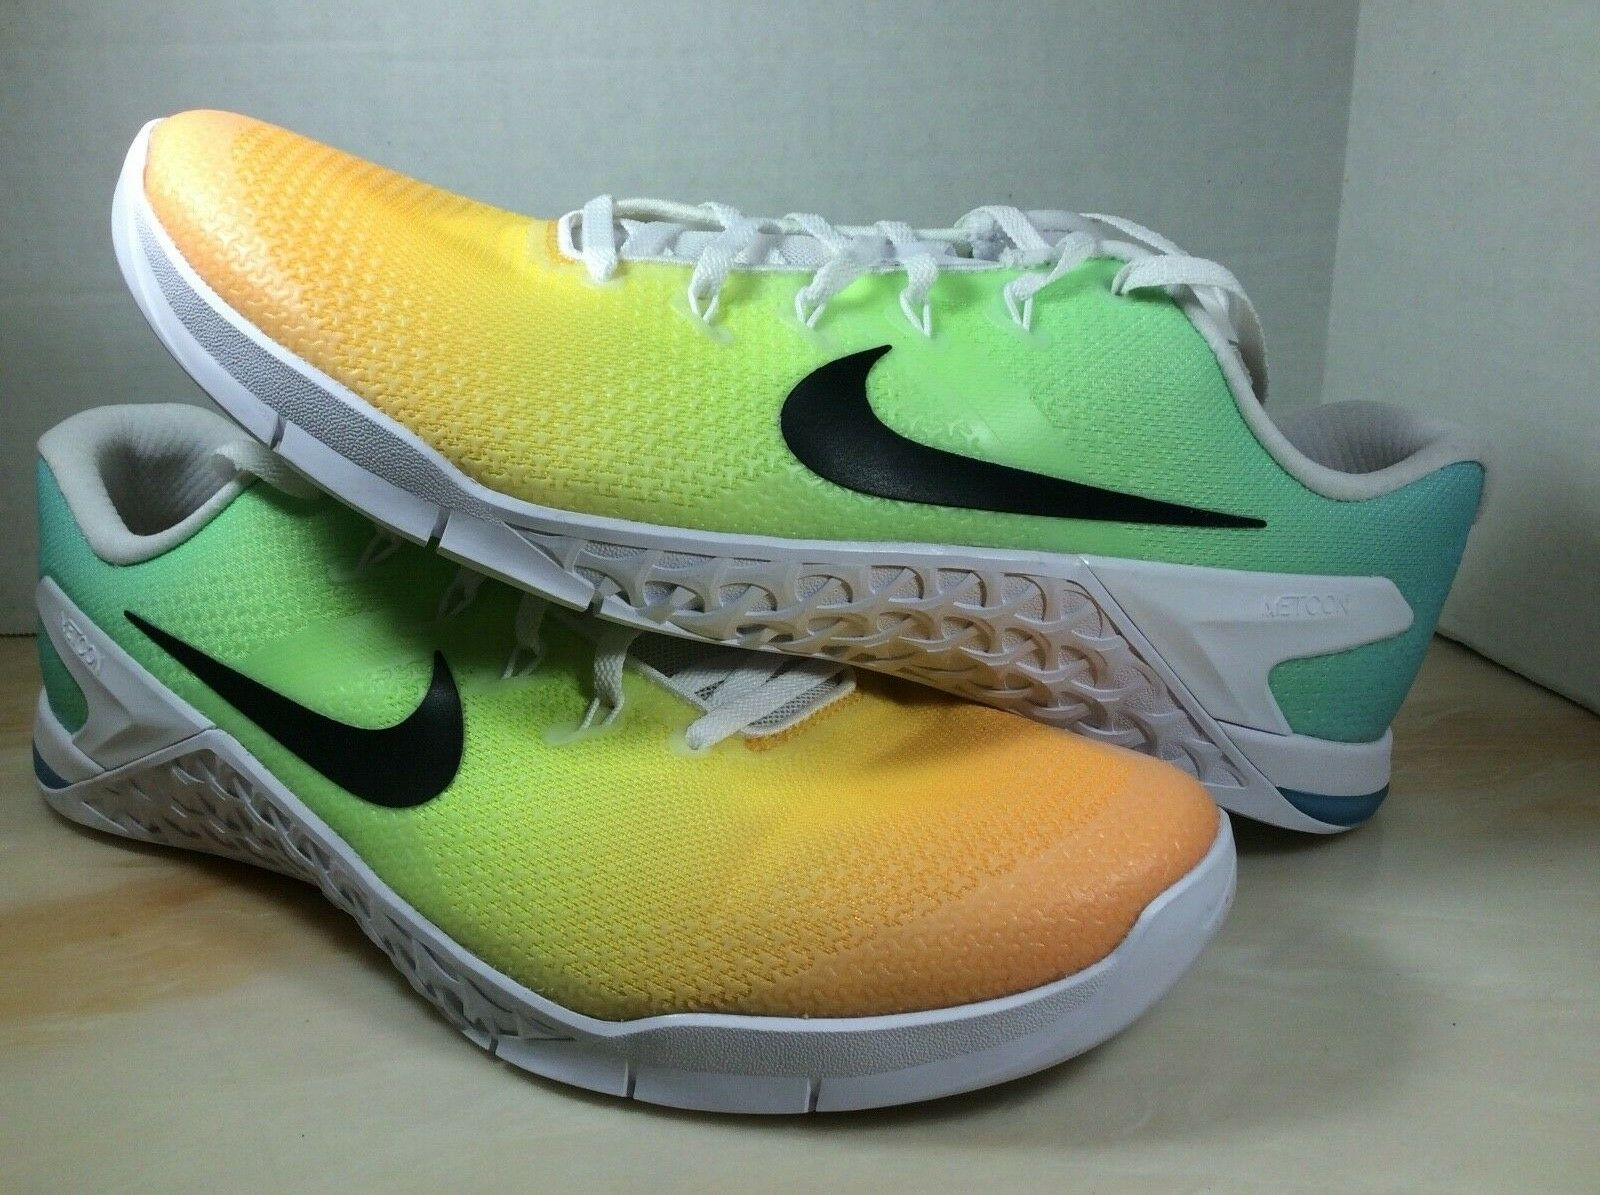 Nike Metcon 4 mens training shoes size 11.5 lagoon pulse white AH7453-104